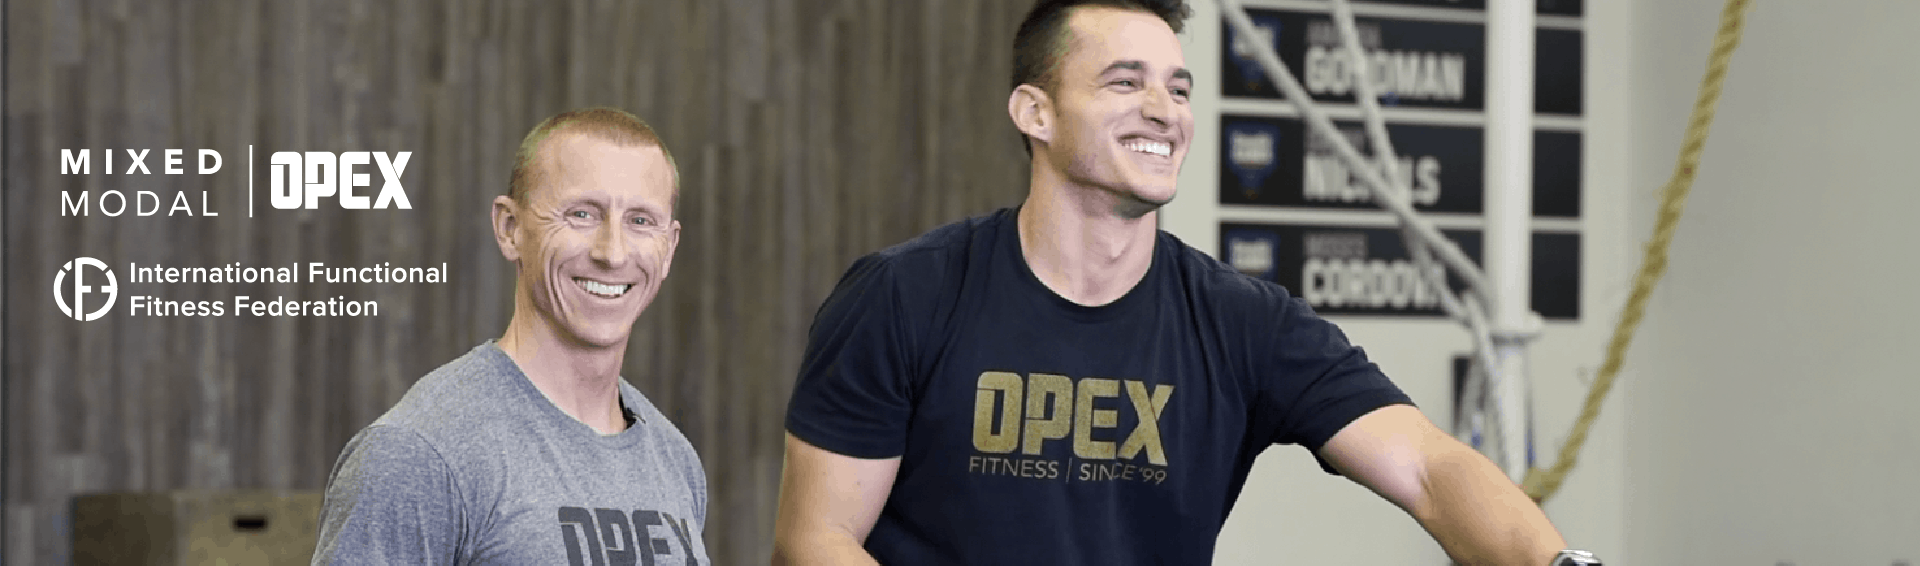 OPEX Fitness Charitably Partners With IF3